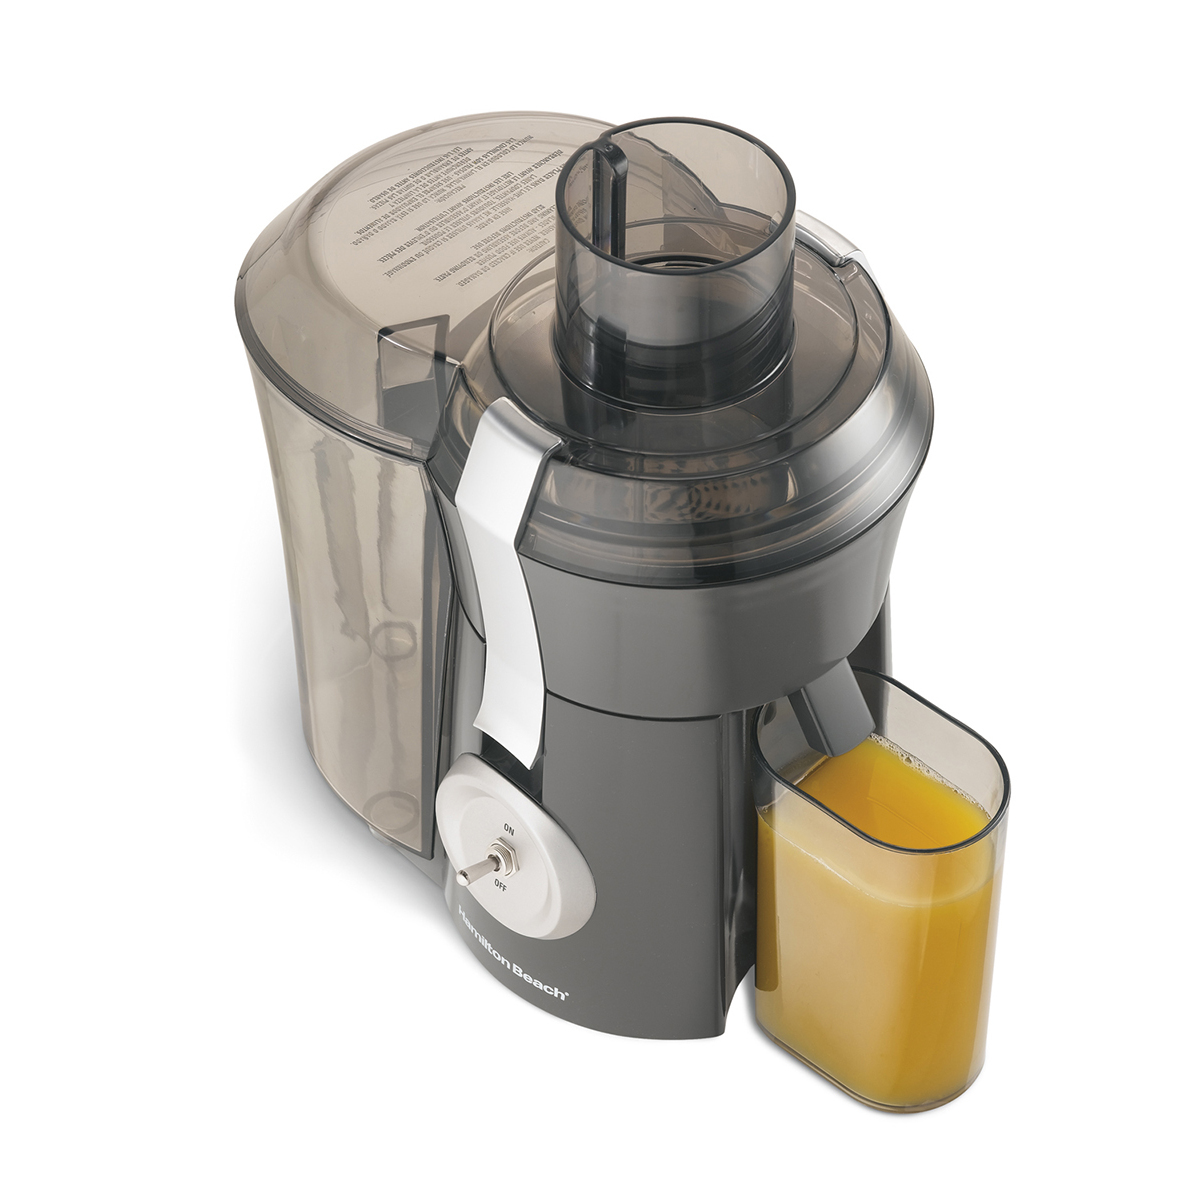 Big Mouth® Pro Juice Extractor (67650)